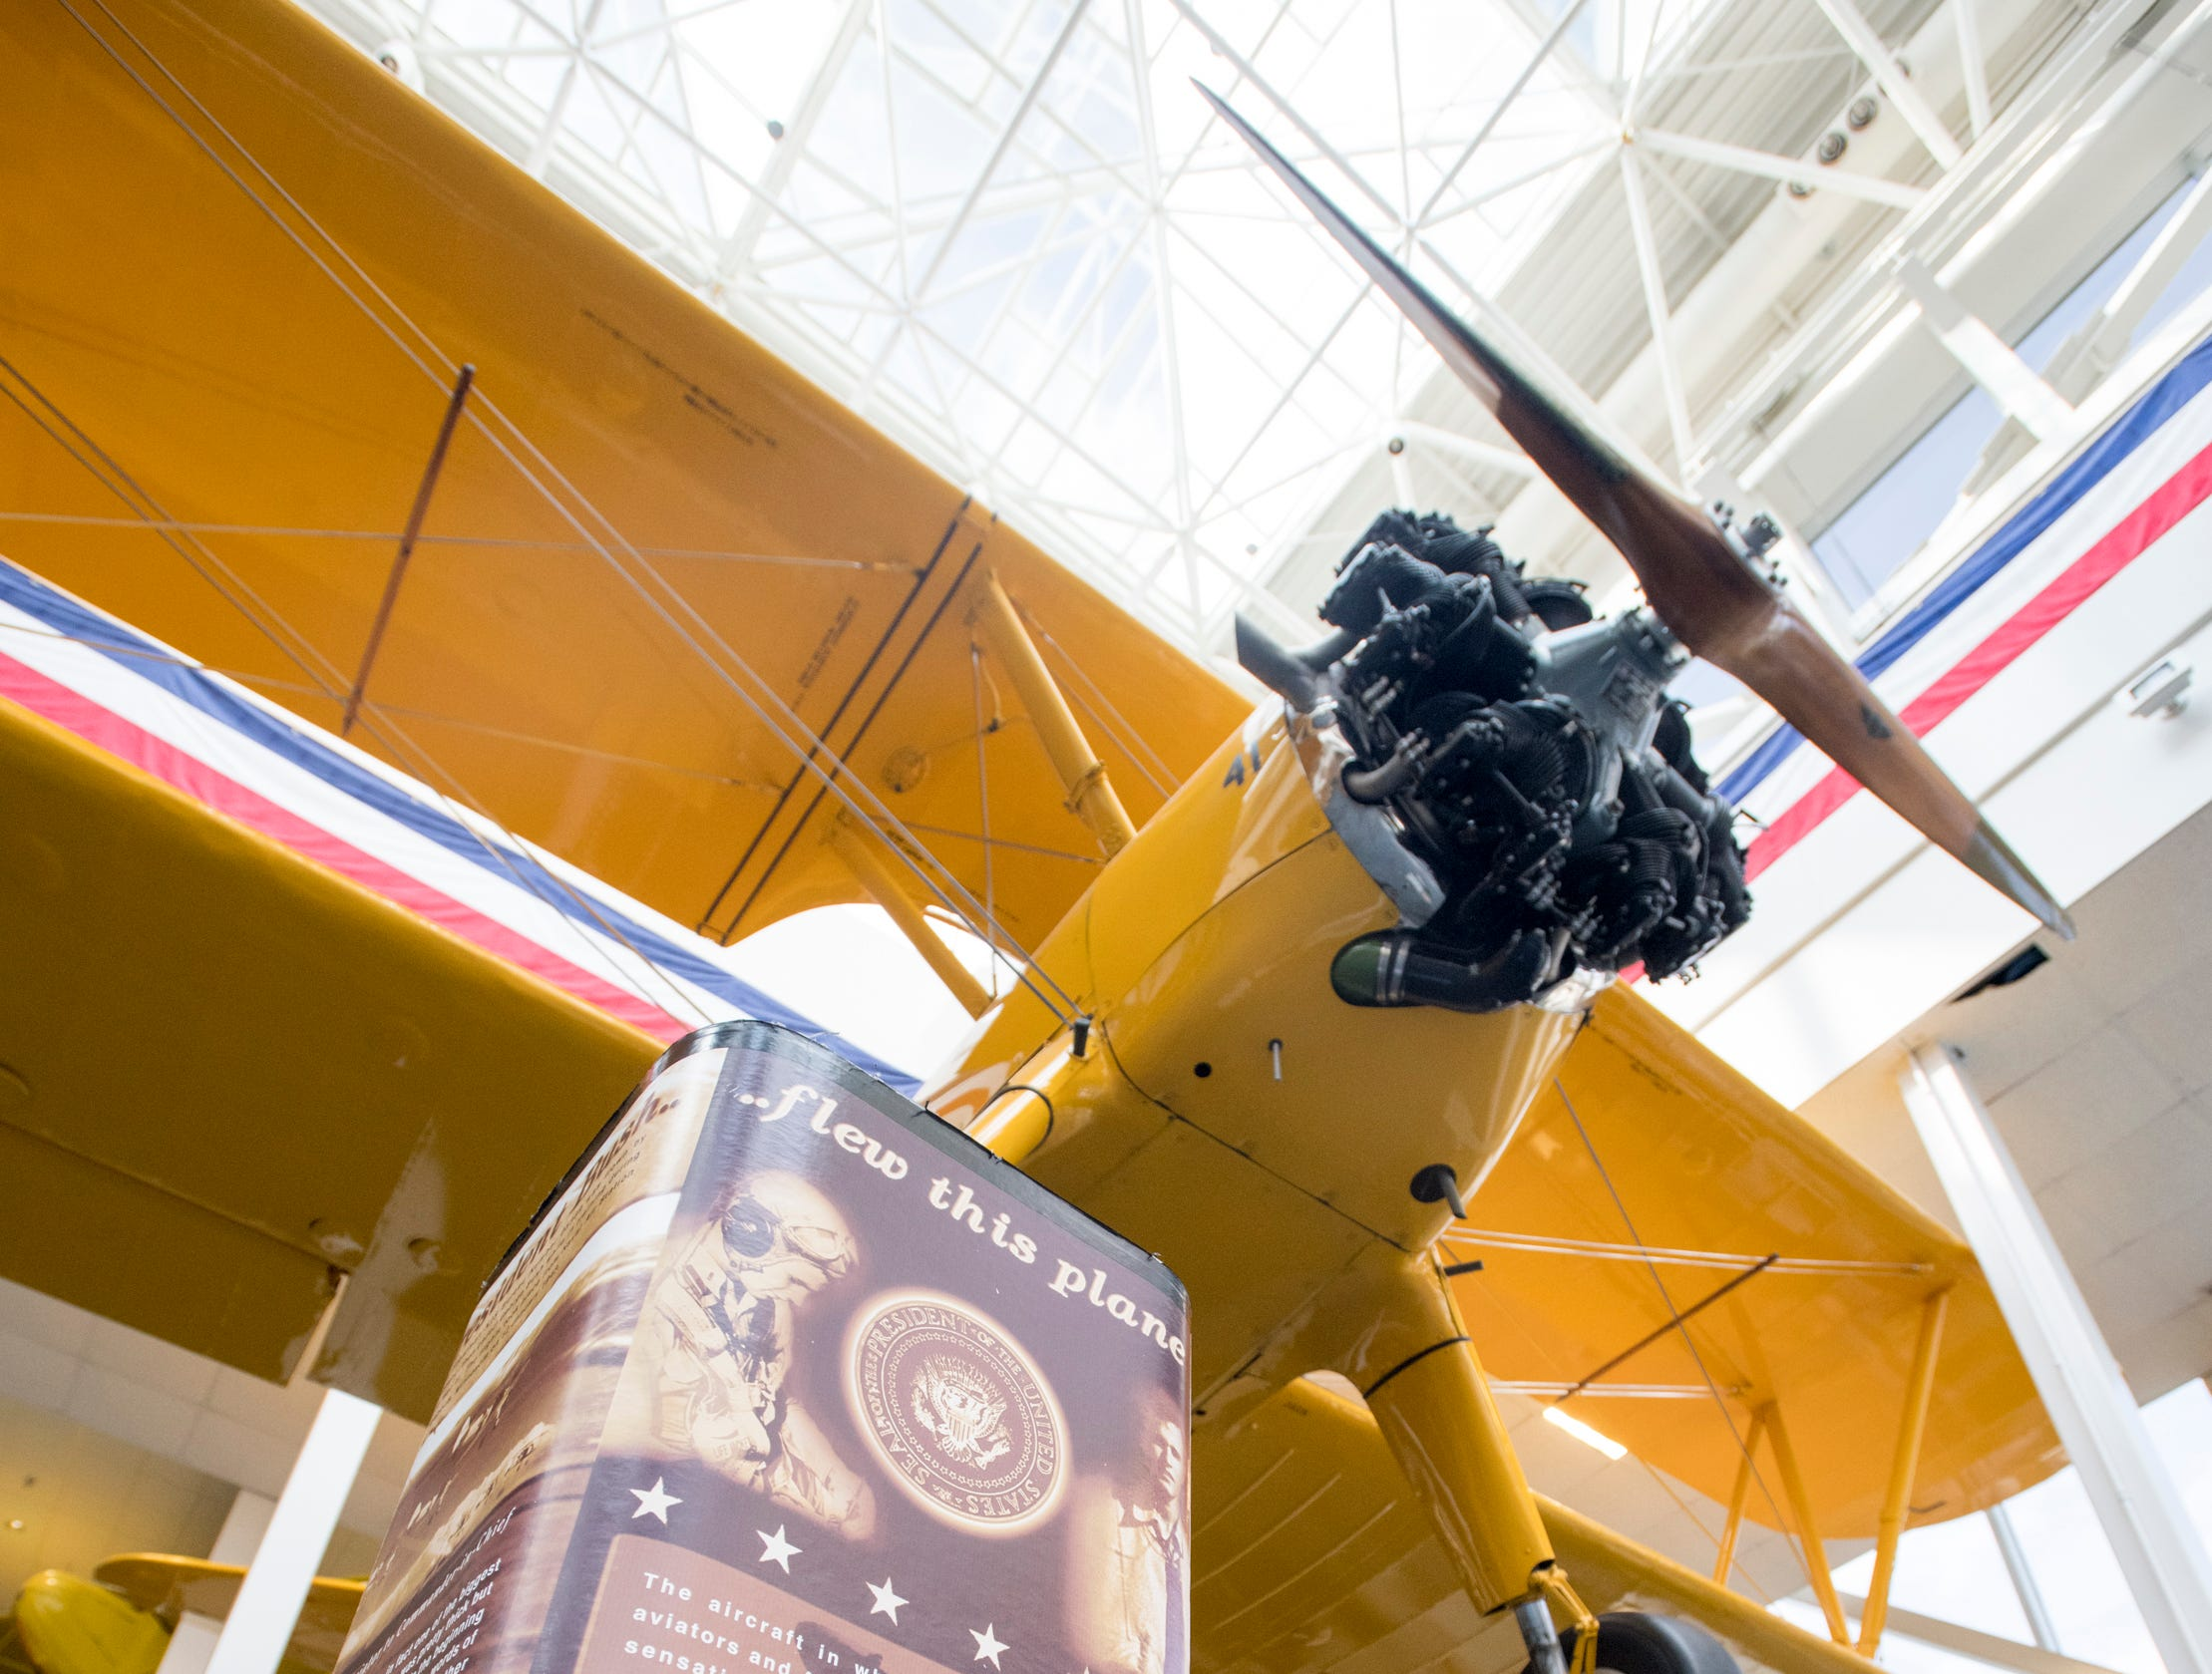 A Stearman biplane flown by President (then cadet) George H.W. Bush while training during World War II is on display at the National Naval Aviation Museum in Pensacola on Monday, December 3, 2018.